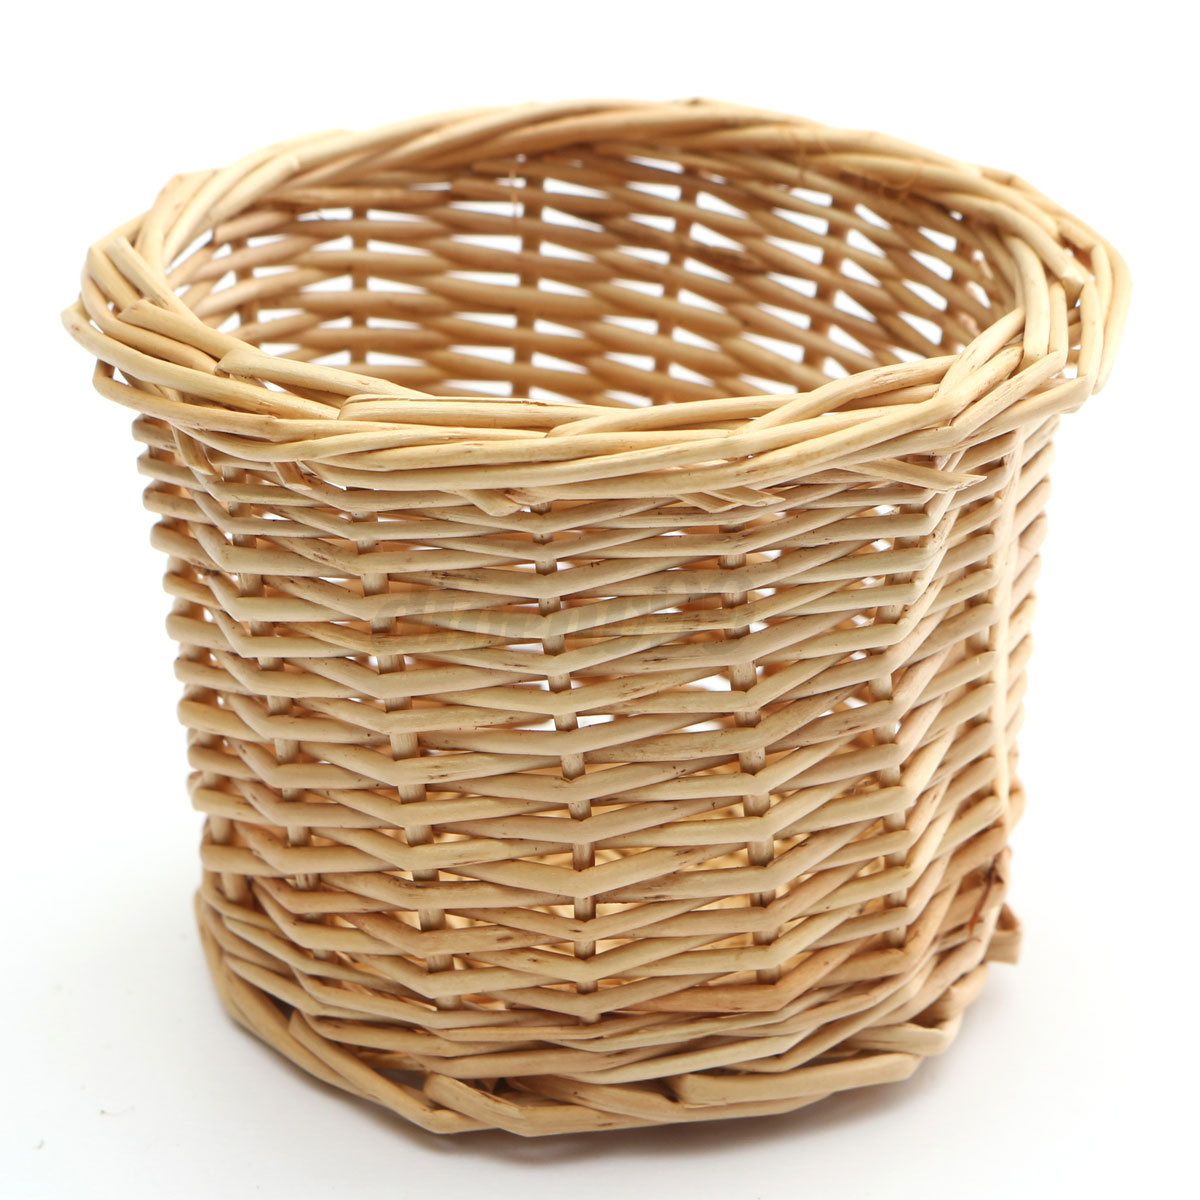 Handmade Small Baskets : Country pastoral style handmade wicker willow storage